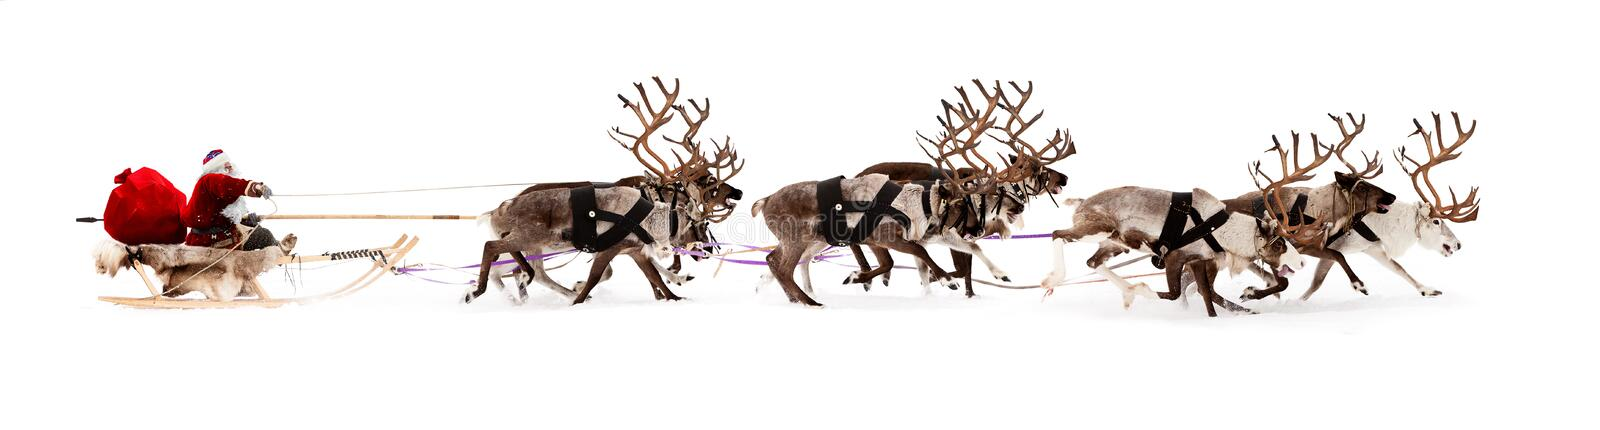 Santa Claus in a sleigh. Santa Claus rides in a reindeer sleigh. He hastens to give gifts before Christmas stock image